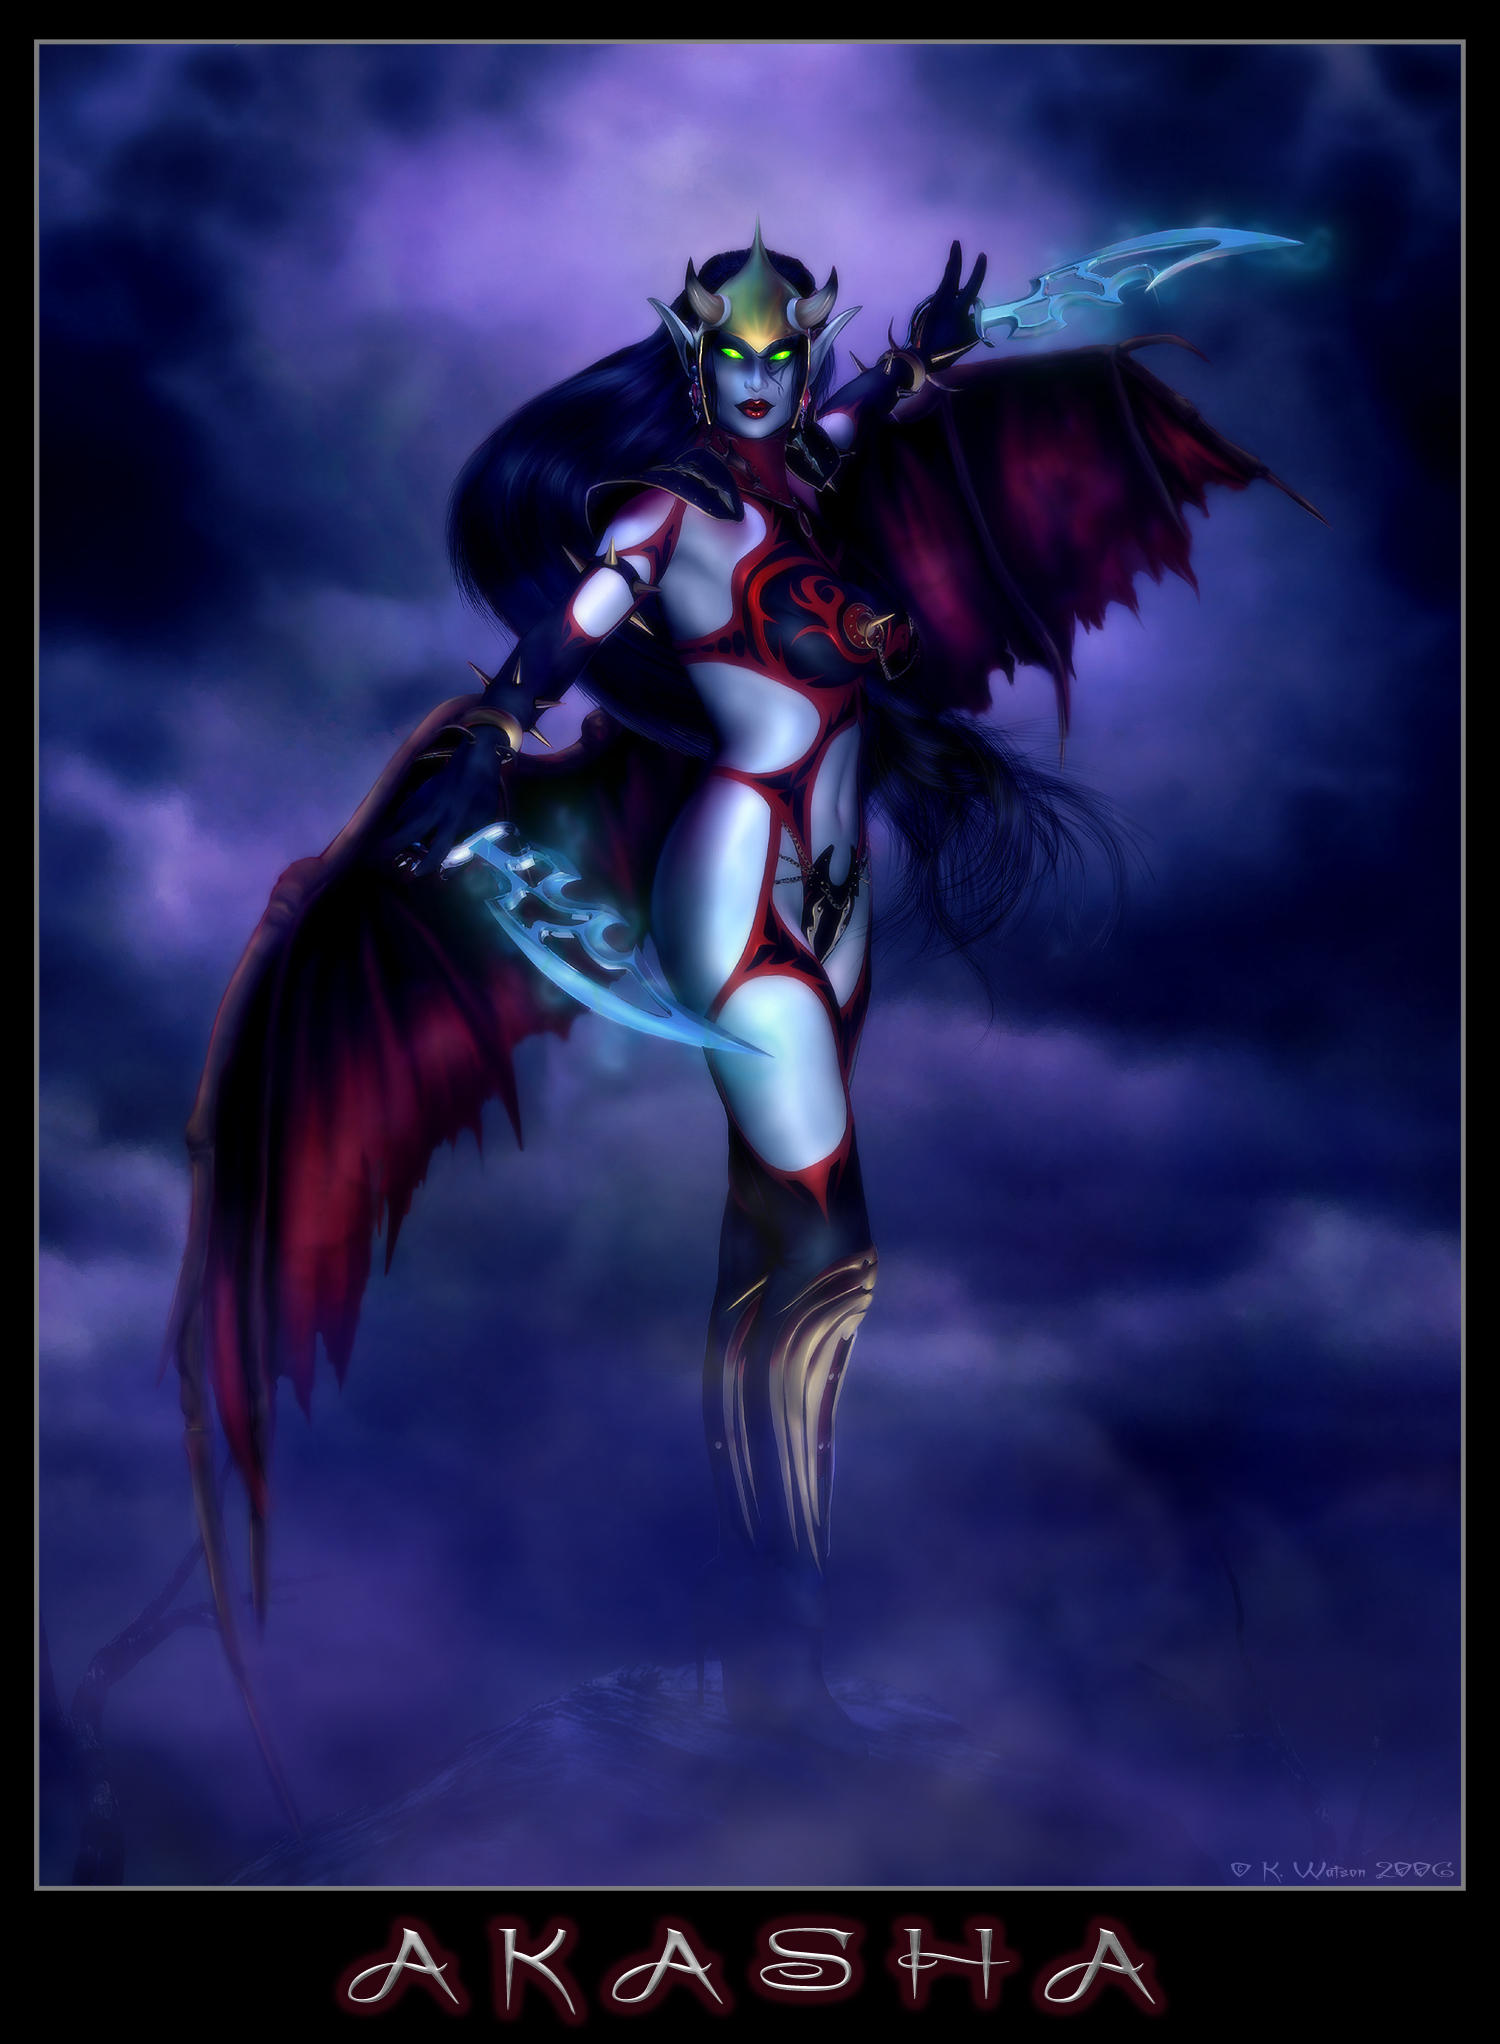 http://fc02.deviantart.com/fs11/i/2006/208/e/1/Akasha___Queen_of_Pain_by_demonika.jpg